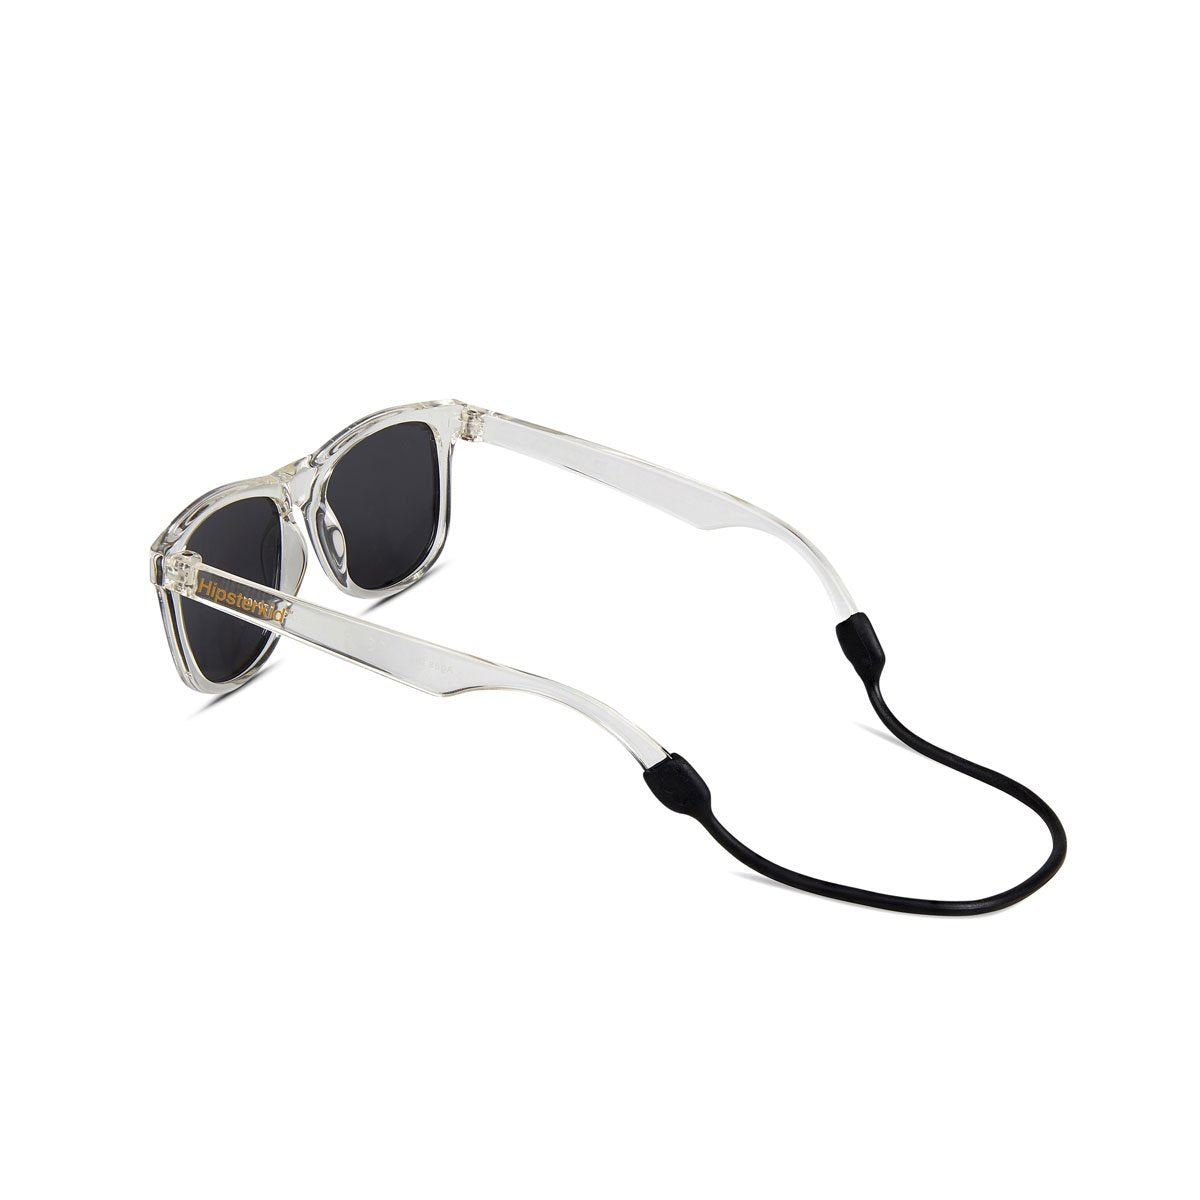 Hipsterkid Golds Kids Sunglasses - Clear (3-6 years)